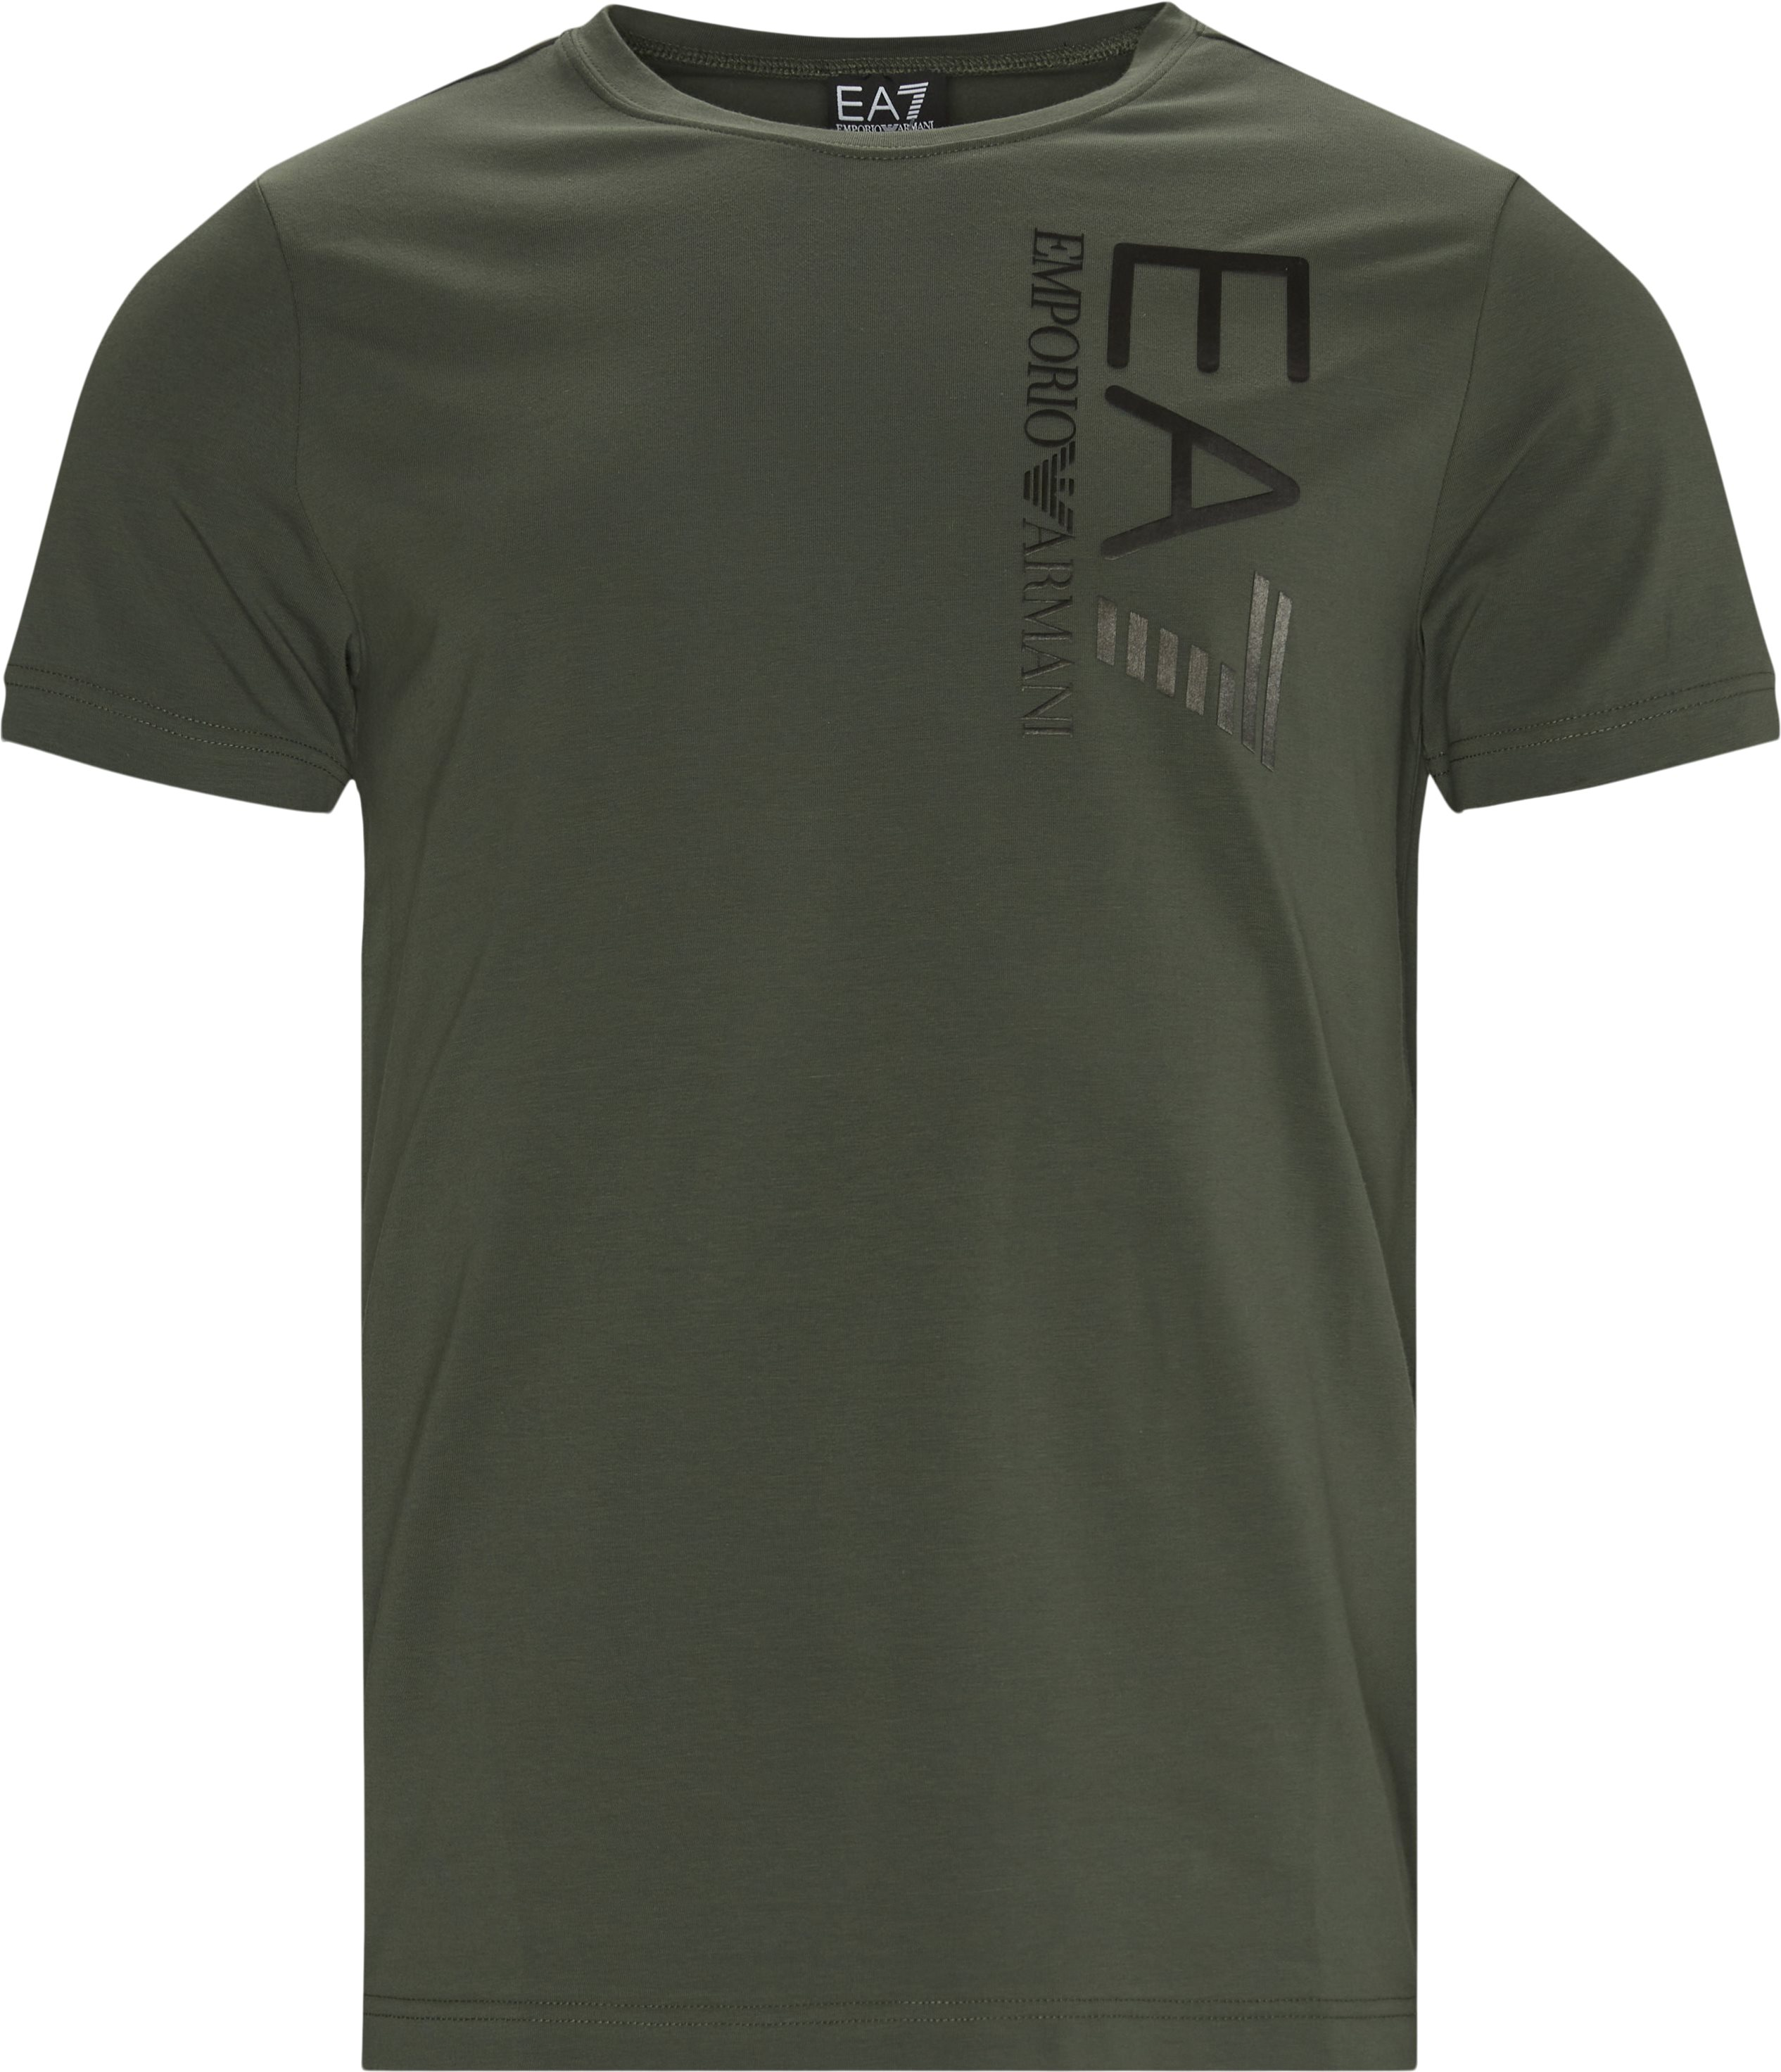 Pj7rz-3kpt10 Tee - T-shirts - Regular - Army